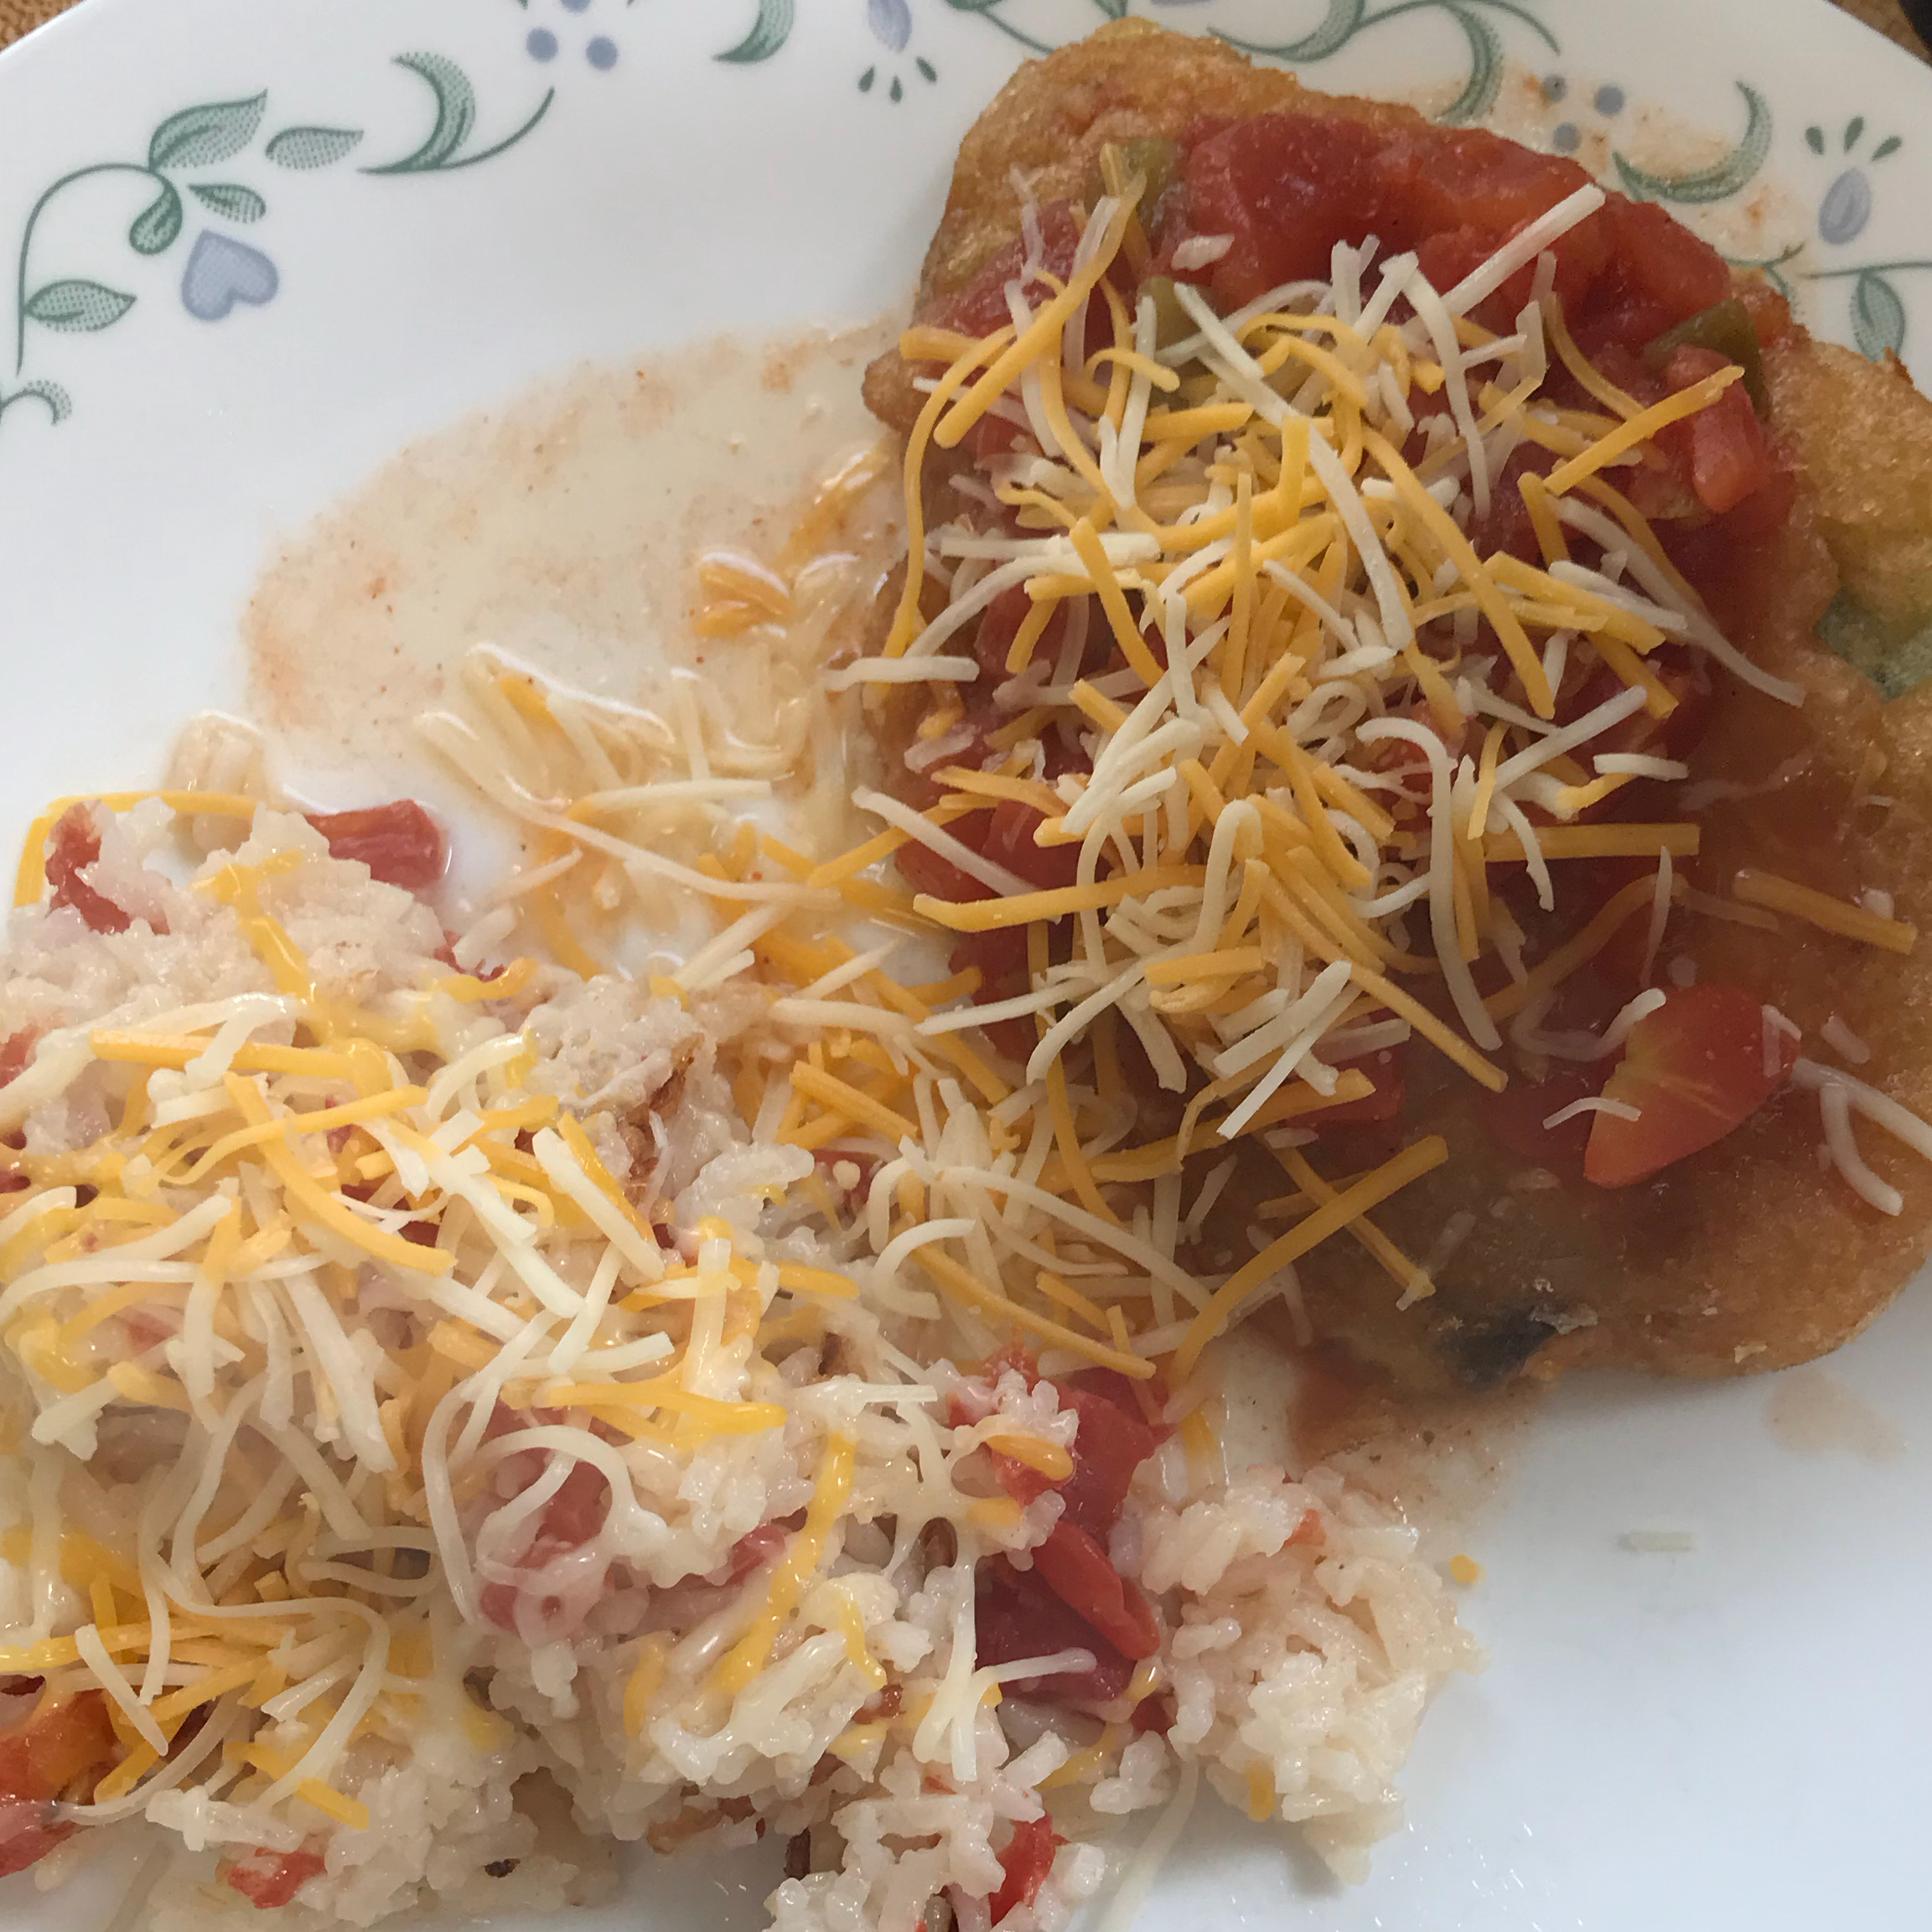 Authentic Mexican Chili Rellenos